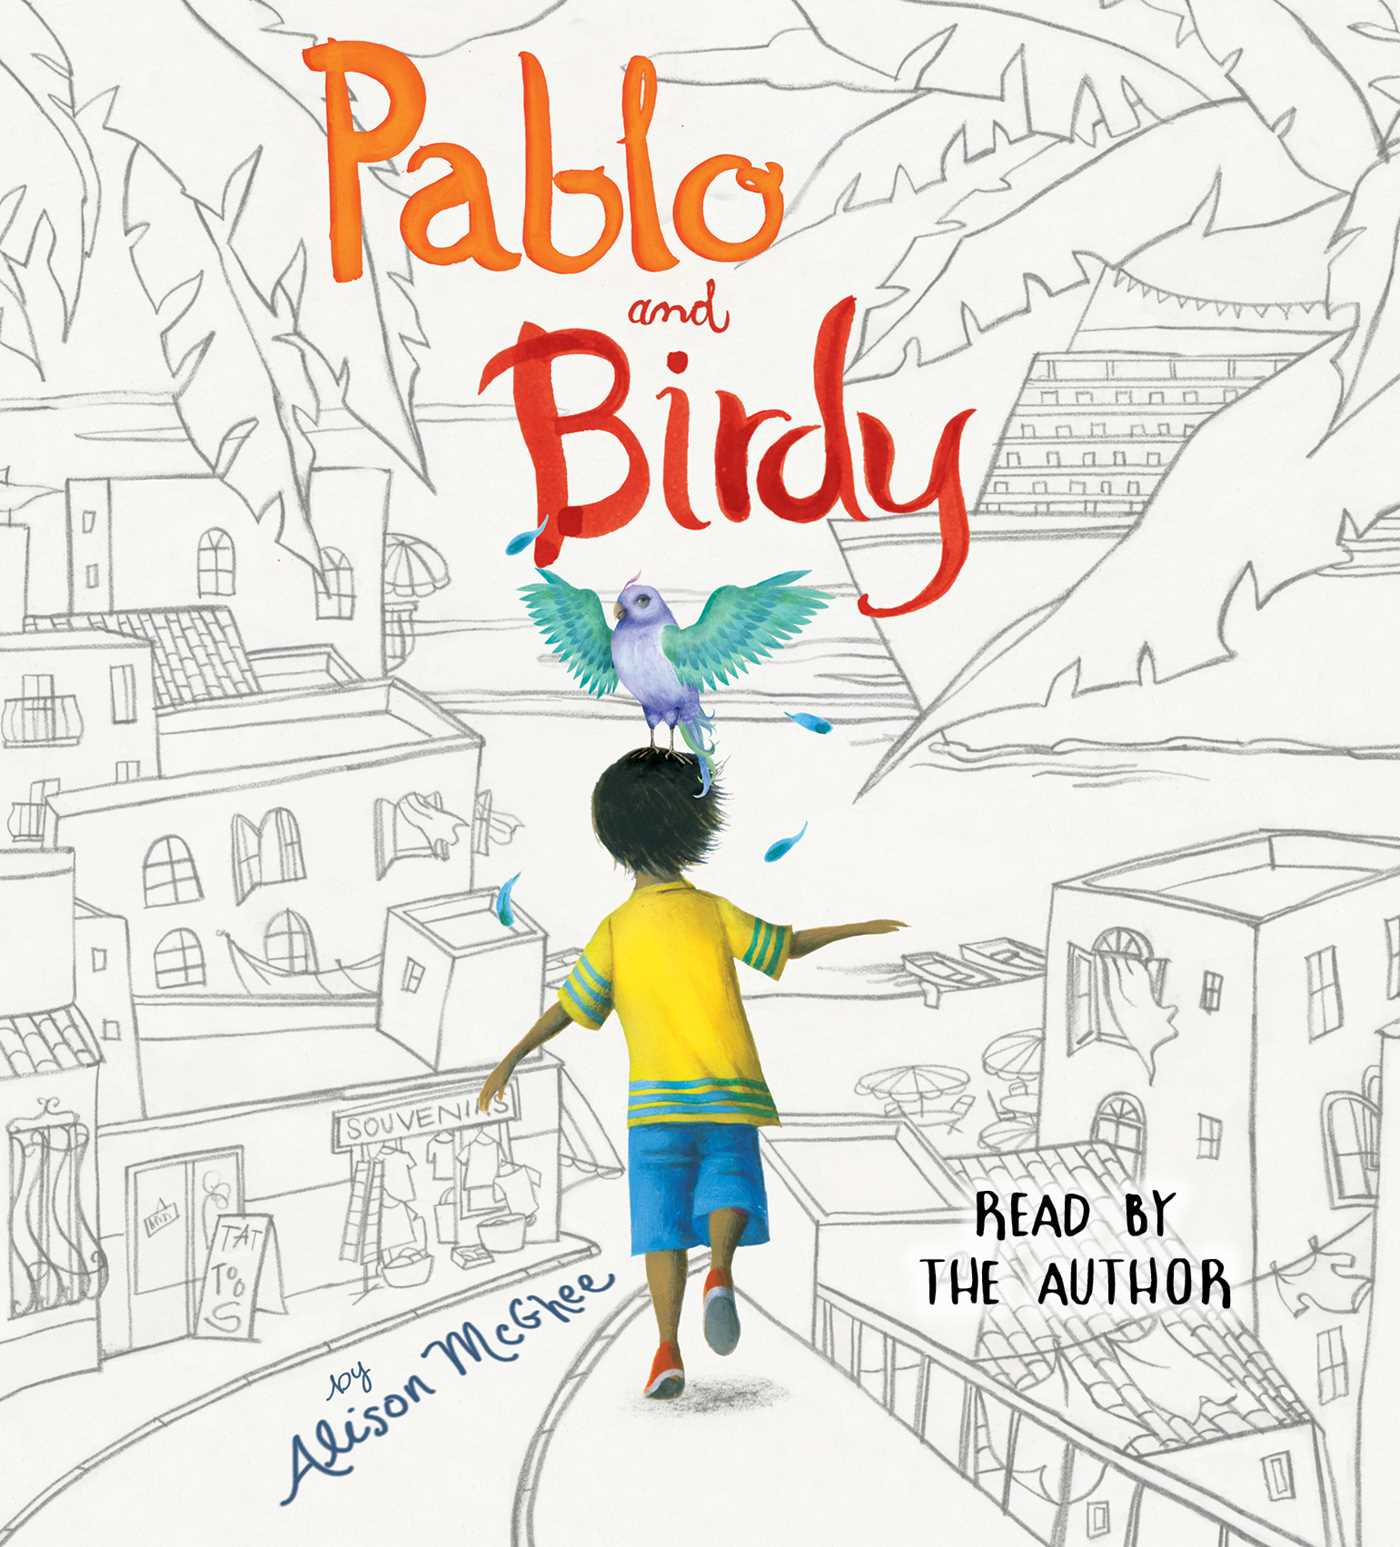 Pablo and birdy 9781508231707 hr